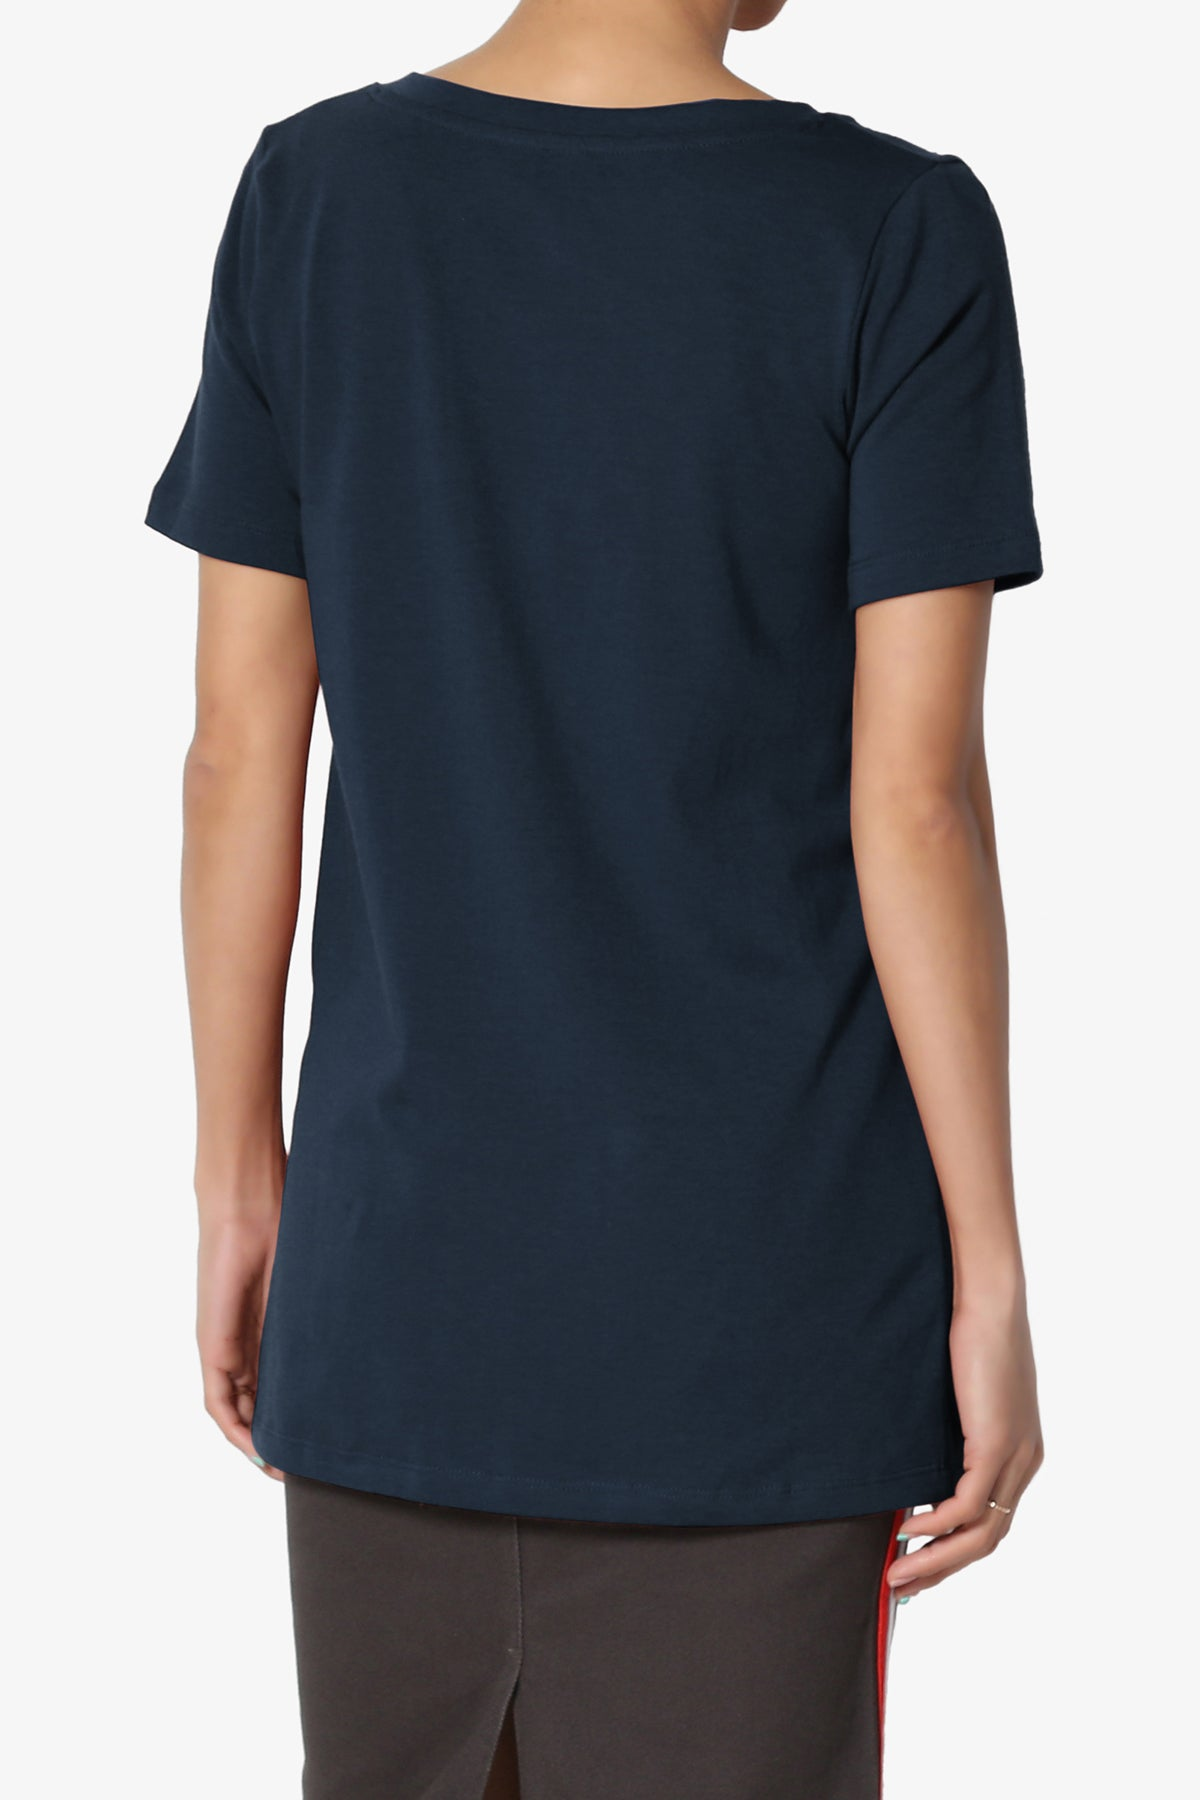 Elora V-Neck Slim Tee ADD COLOR